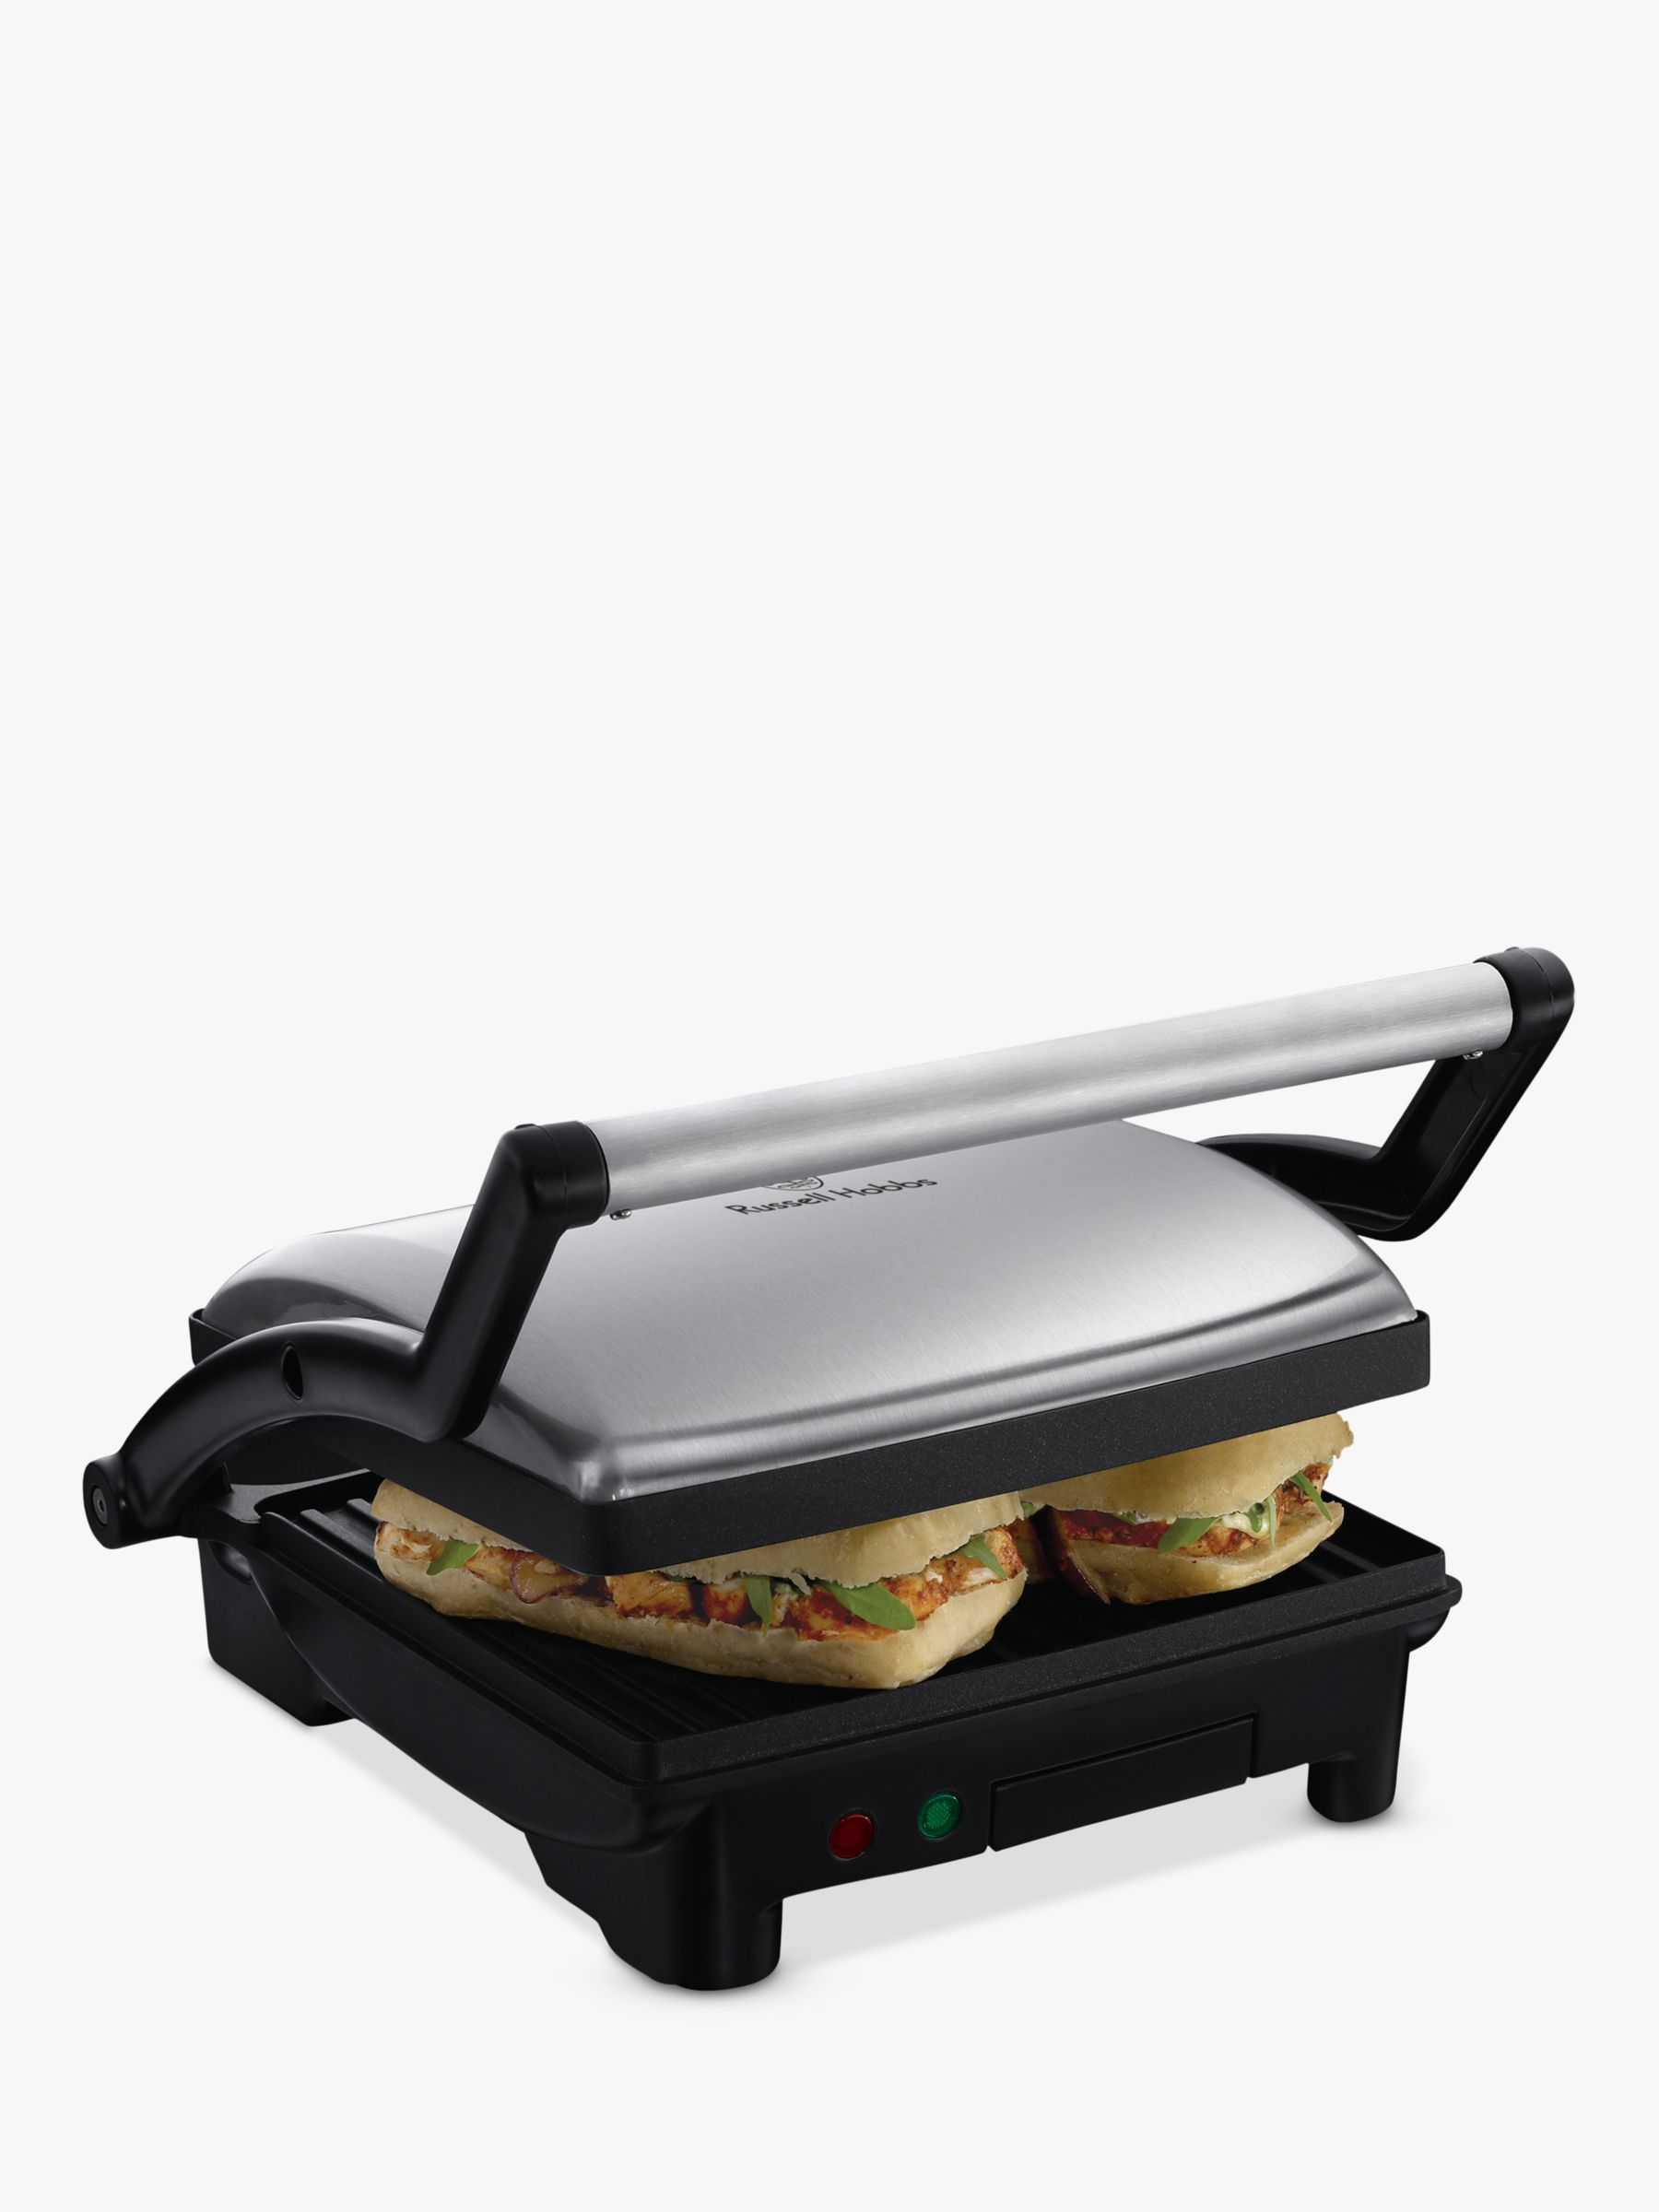 Russell Hobbs Russell Hobbs Cook at Home 3-in-1 Panini Maker, Grill and Griddle